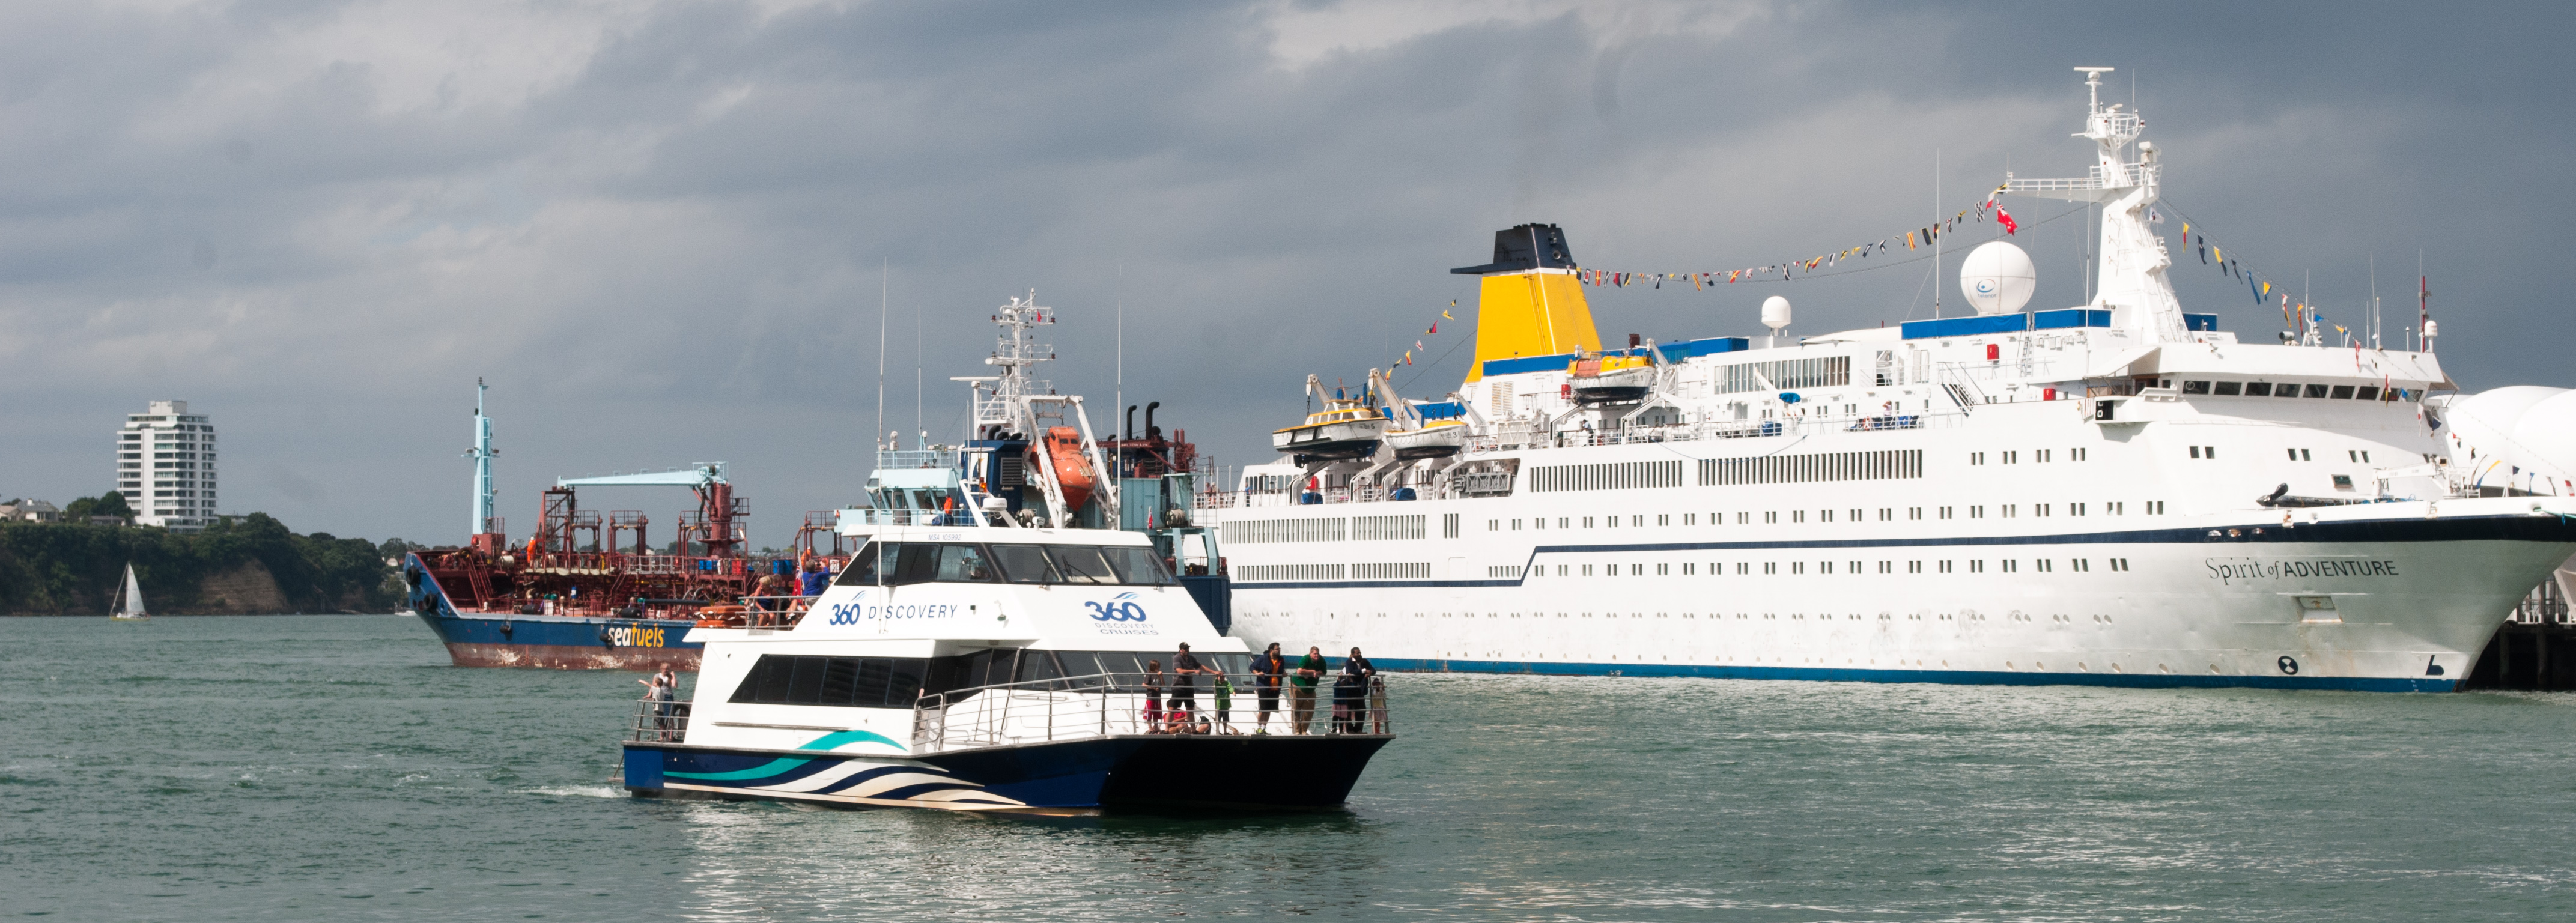 Ships in auckland harbour photo